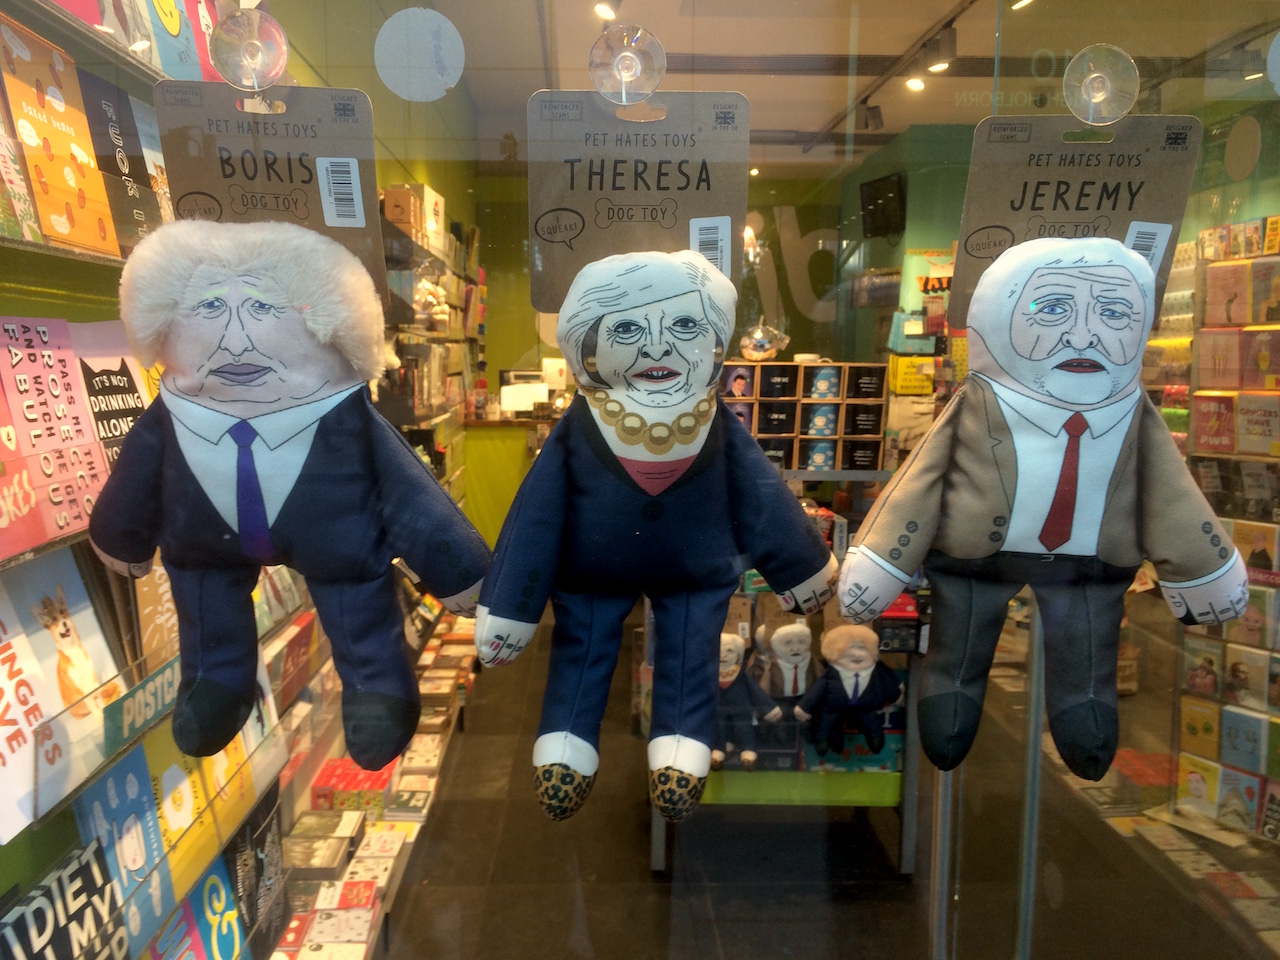 Handpuppen von Boris Johnson, Theresa May und Jeremy Corbyn